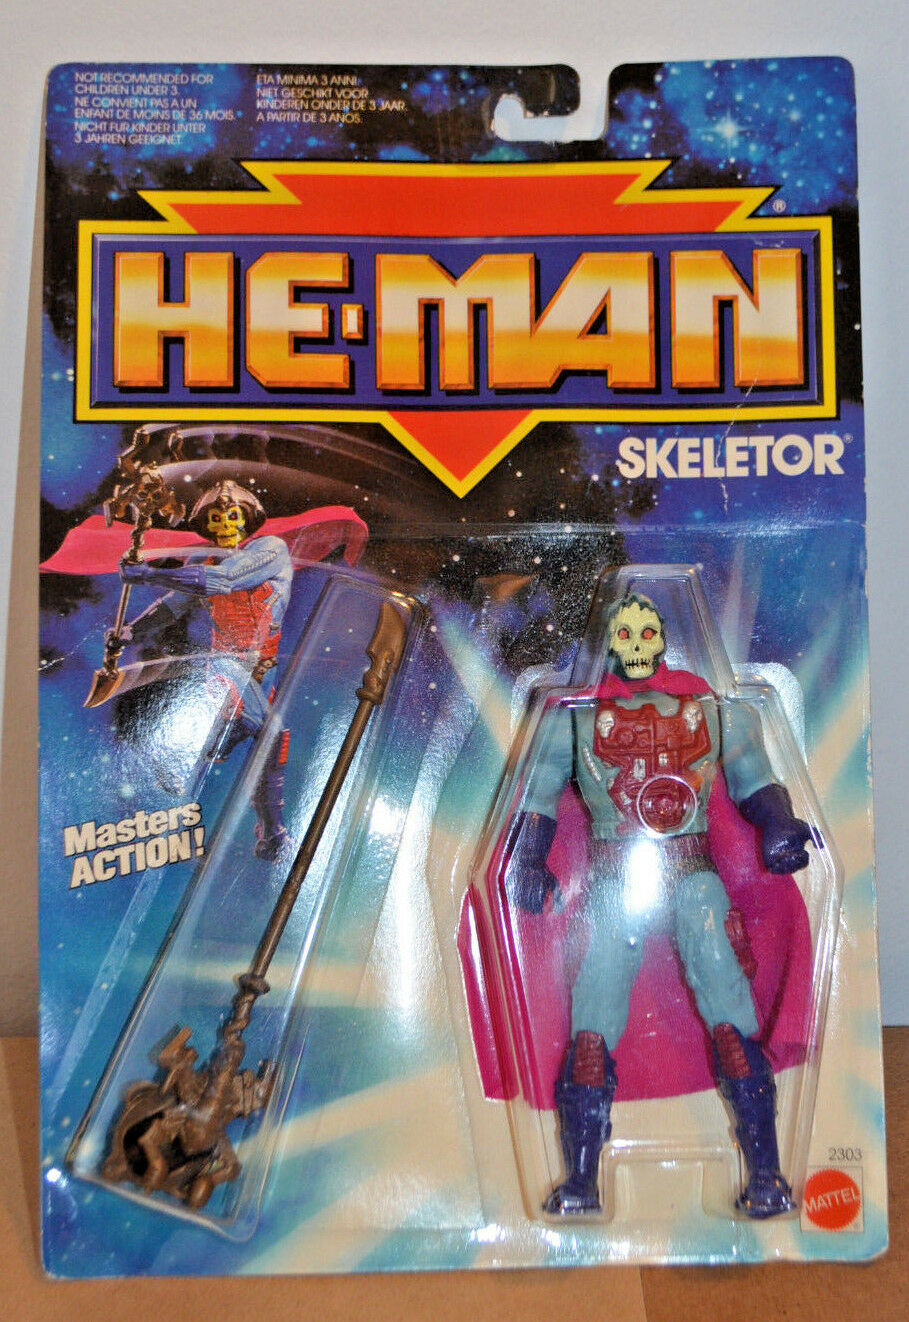 HE-MAN NEW ADVENTURES SKELETOR EURO CocheD